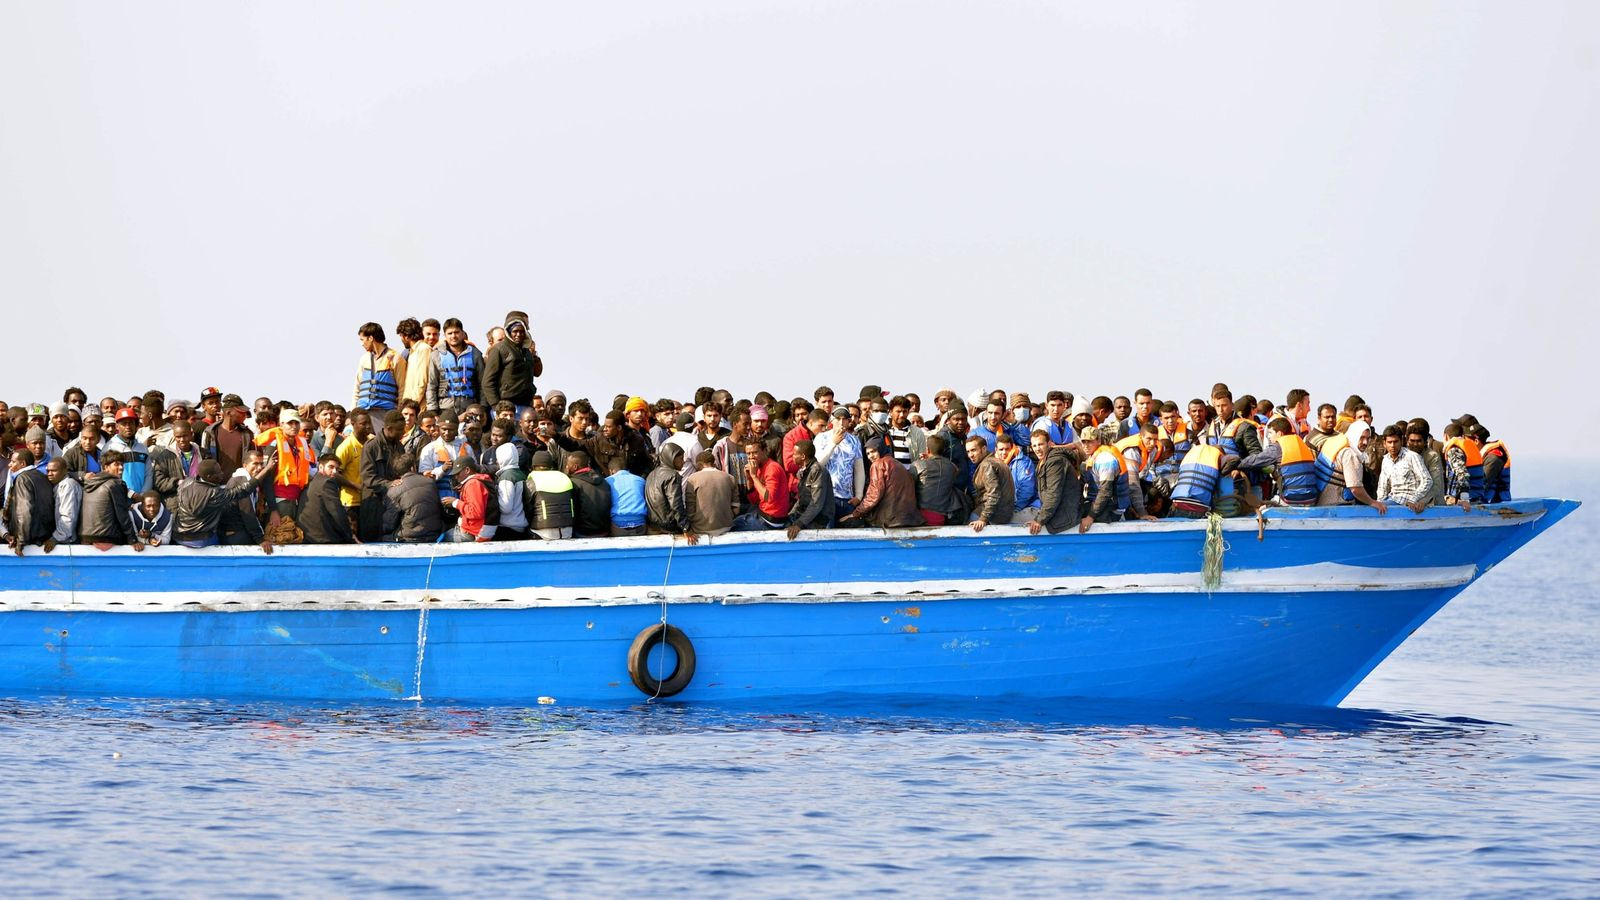 Up to 150 migrants feared drowned off coast of Libya